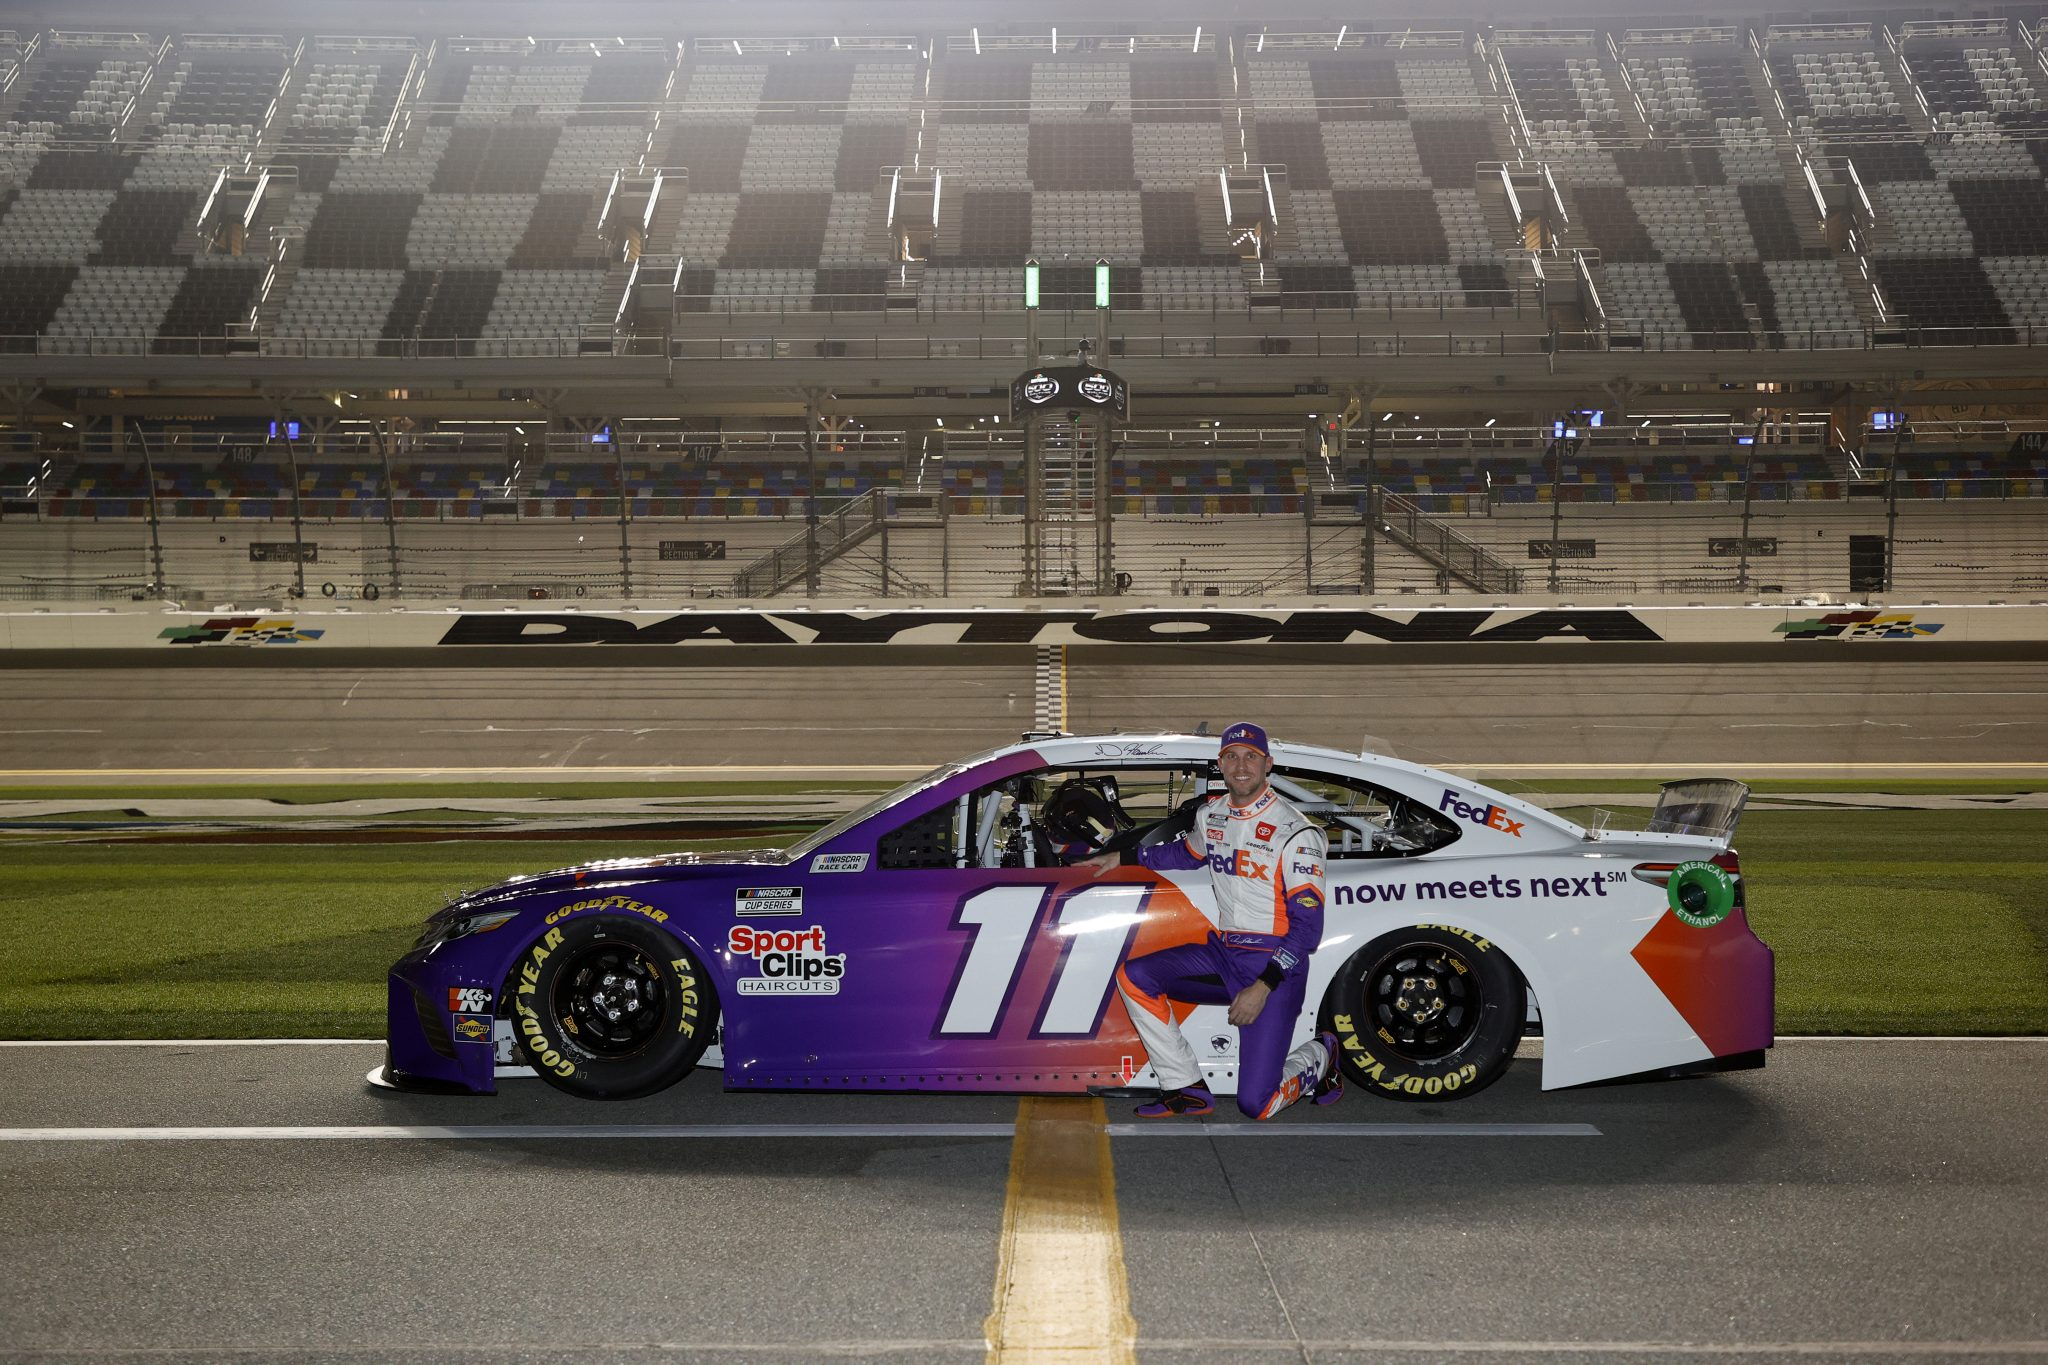 DAYTONA BEACH, FLORIDA - FEBRUARY 10: Denny Hamlin, driver of the #11 FedEx Toyota, poses for photos during qualifying for the NASCAR Cup Series 63rd Annual Daytona 500 at Daytona International Speedway on February 10, 2021 in Daytona Beach, Florida. (Photo by Jared C. Tilton/Getty Images) | Getty Images